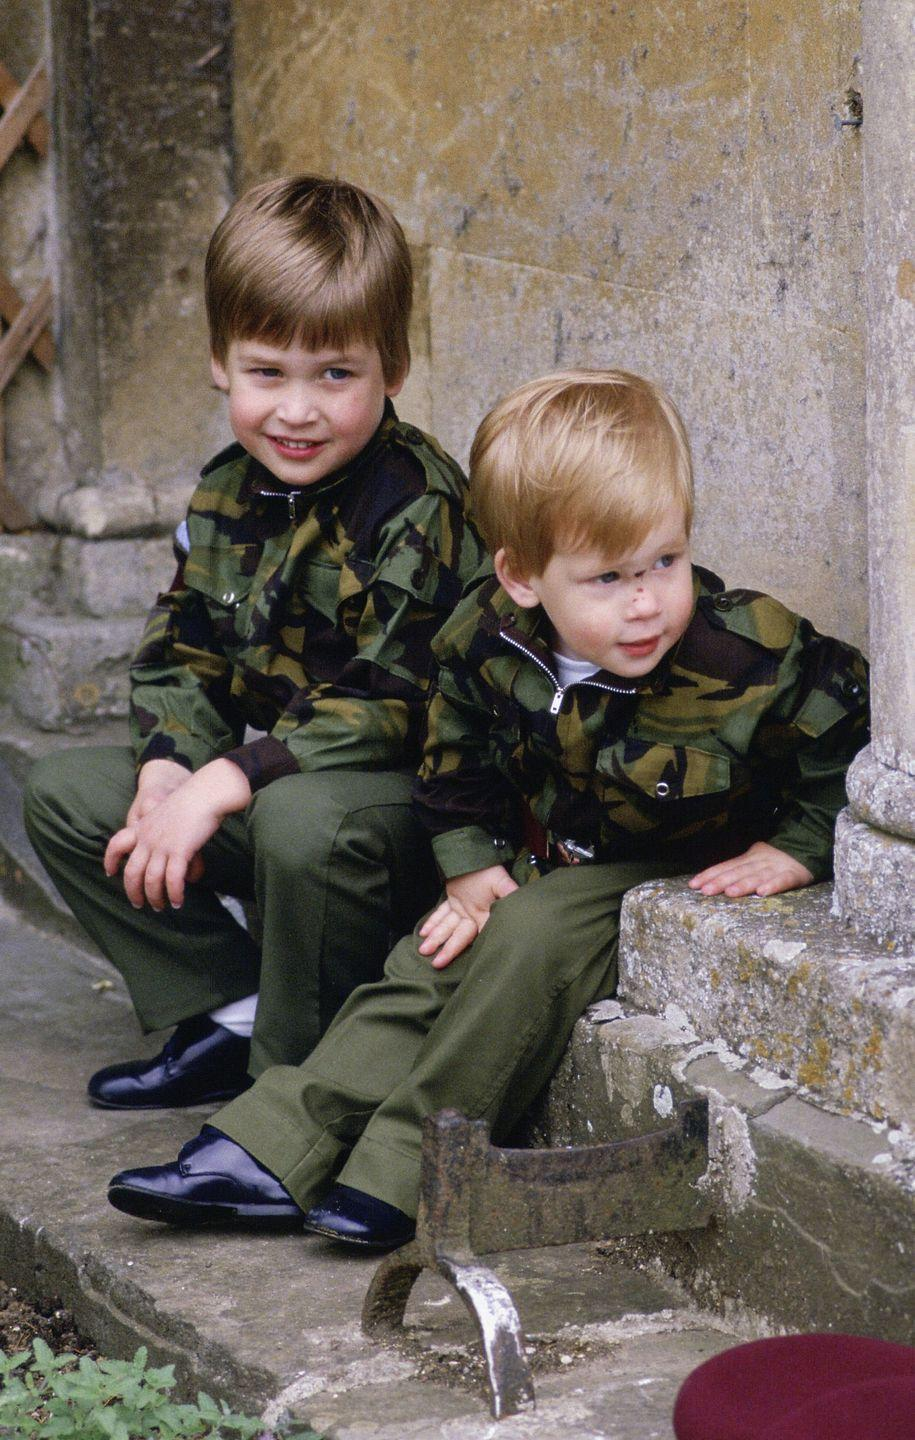 <p>Remember when your parents dressed you and your sibs up in matching outfits as kids? Turns out even royals can't escape it. </p>